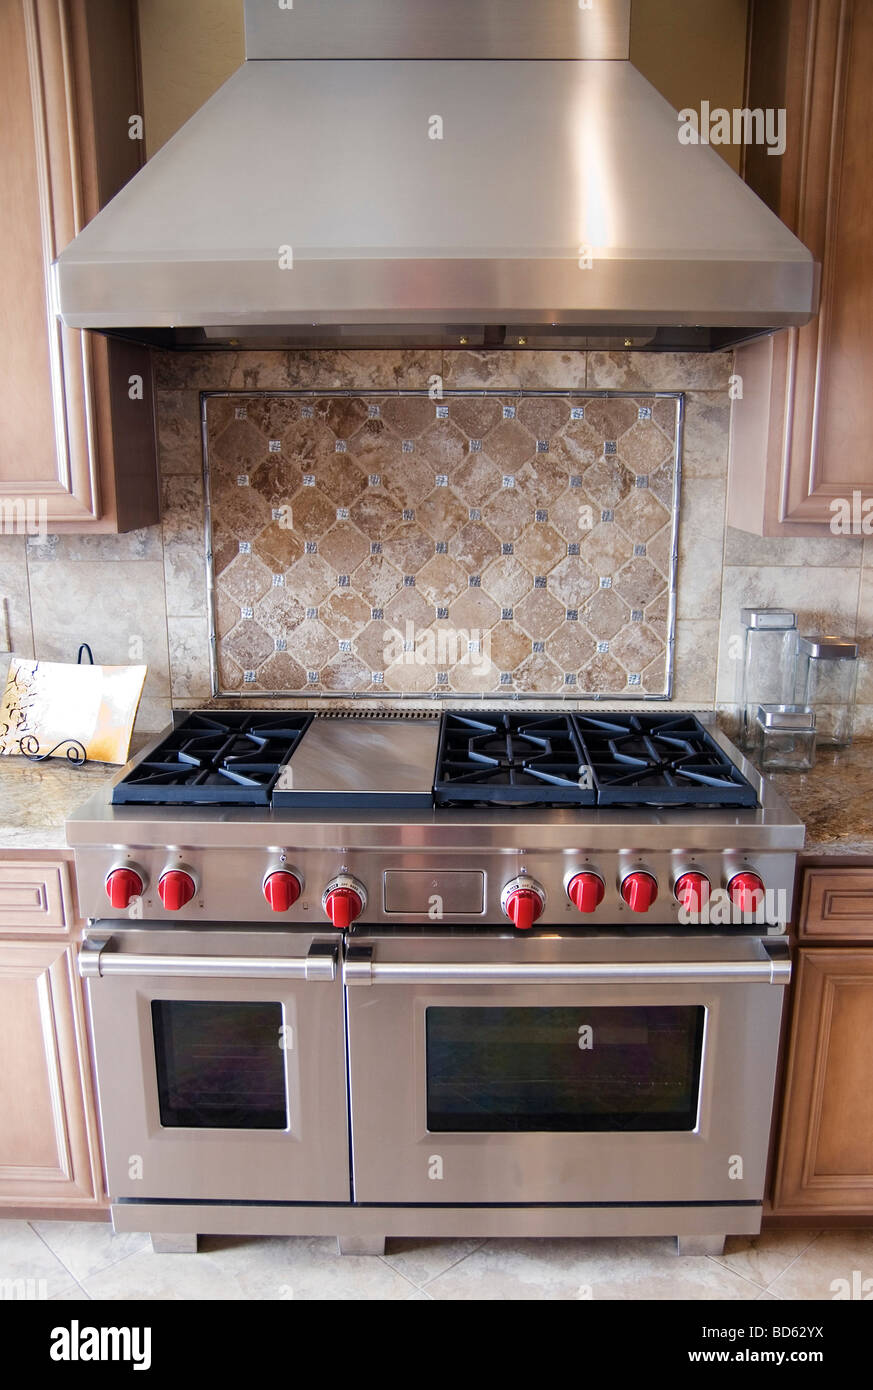 Modern kitchen with luxury state of the art gas oven stove cooker and hood Stock Photo